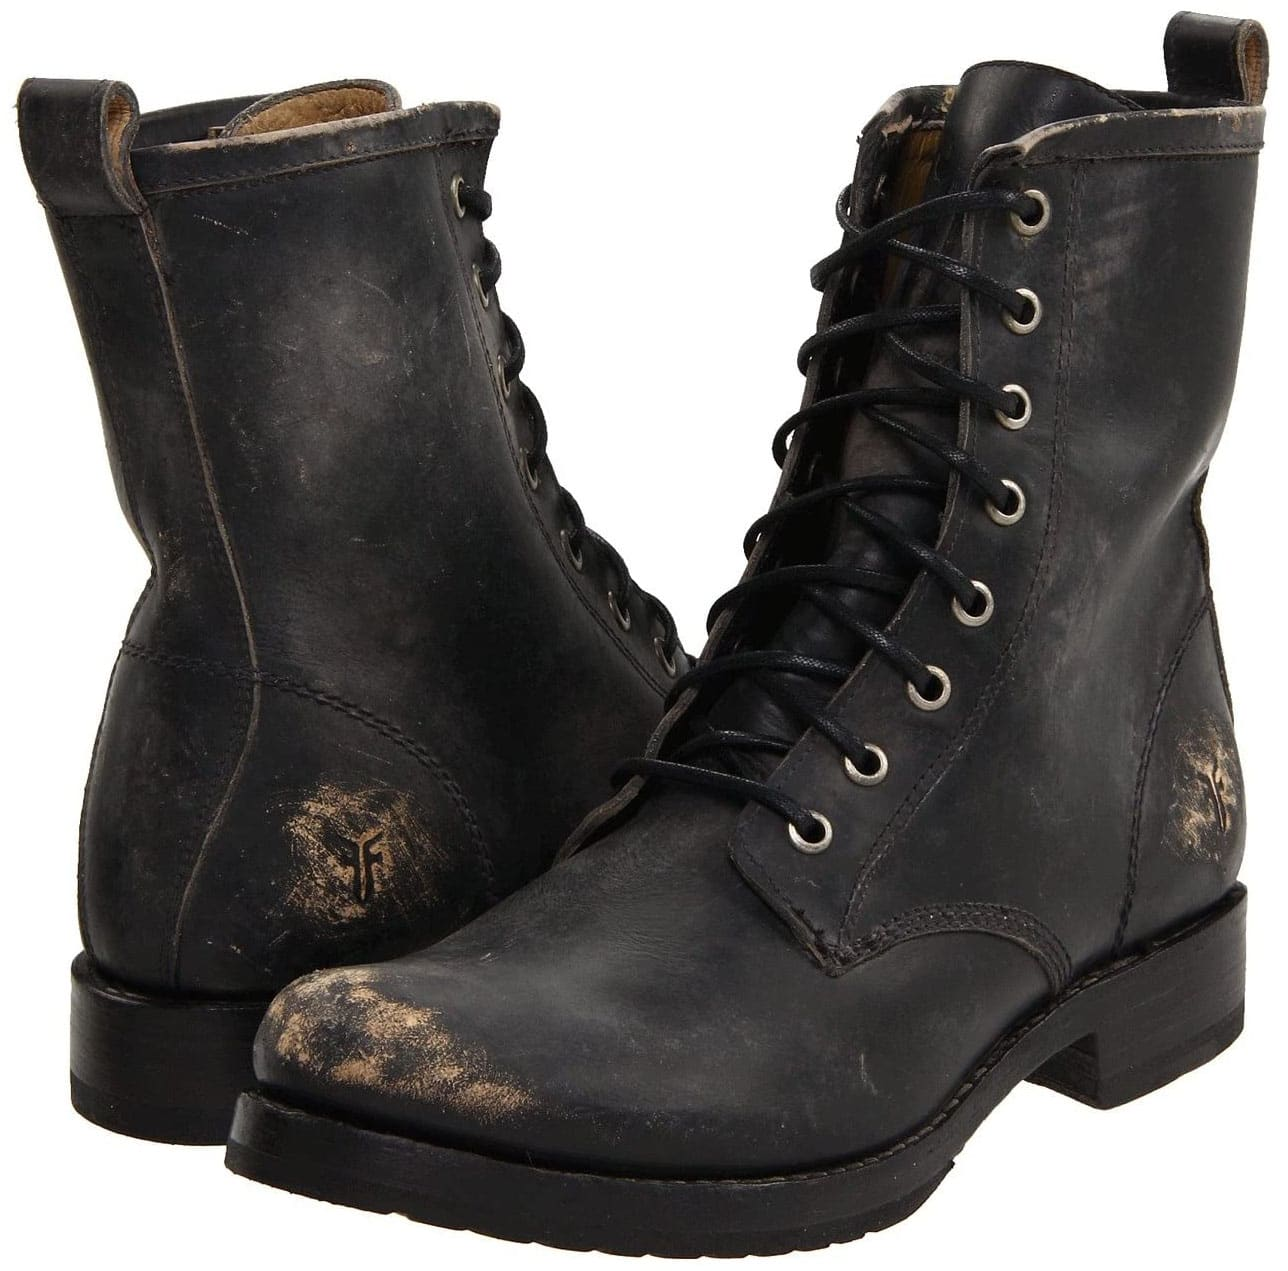 For a distressed, grungy look, opt for Frye's Veronica boots, which feature a burnished leather finish